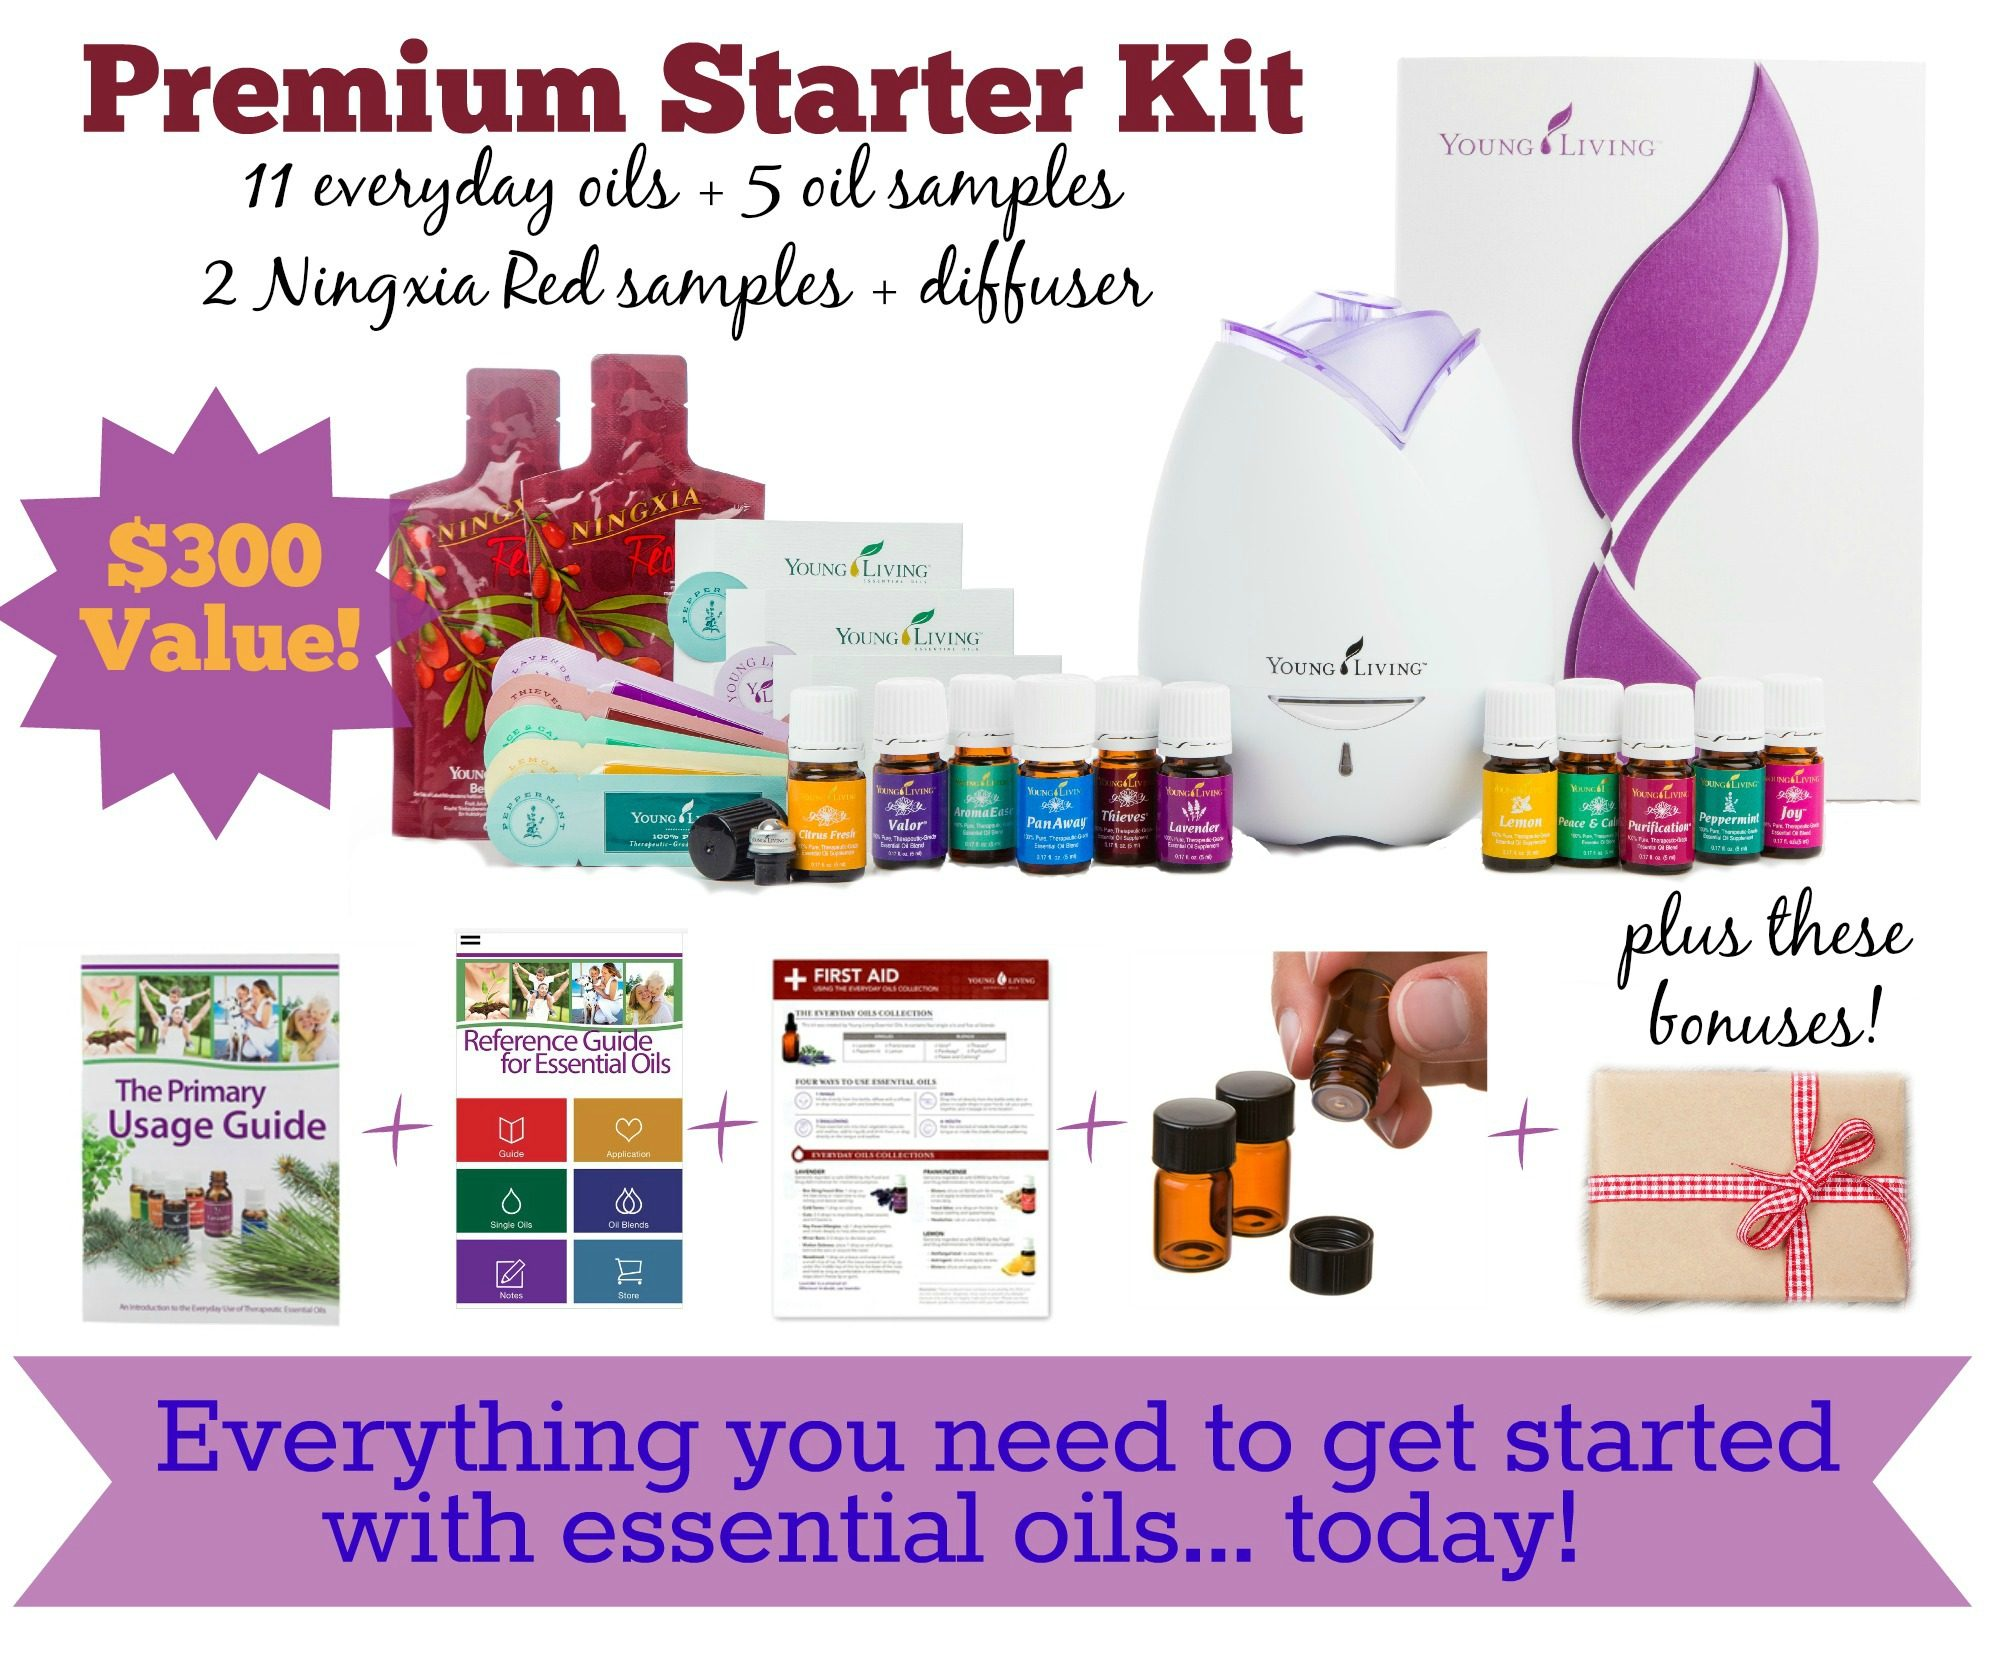 Young Living Premium Starter Kit and Bonuses